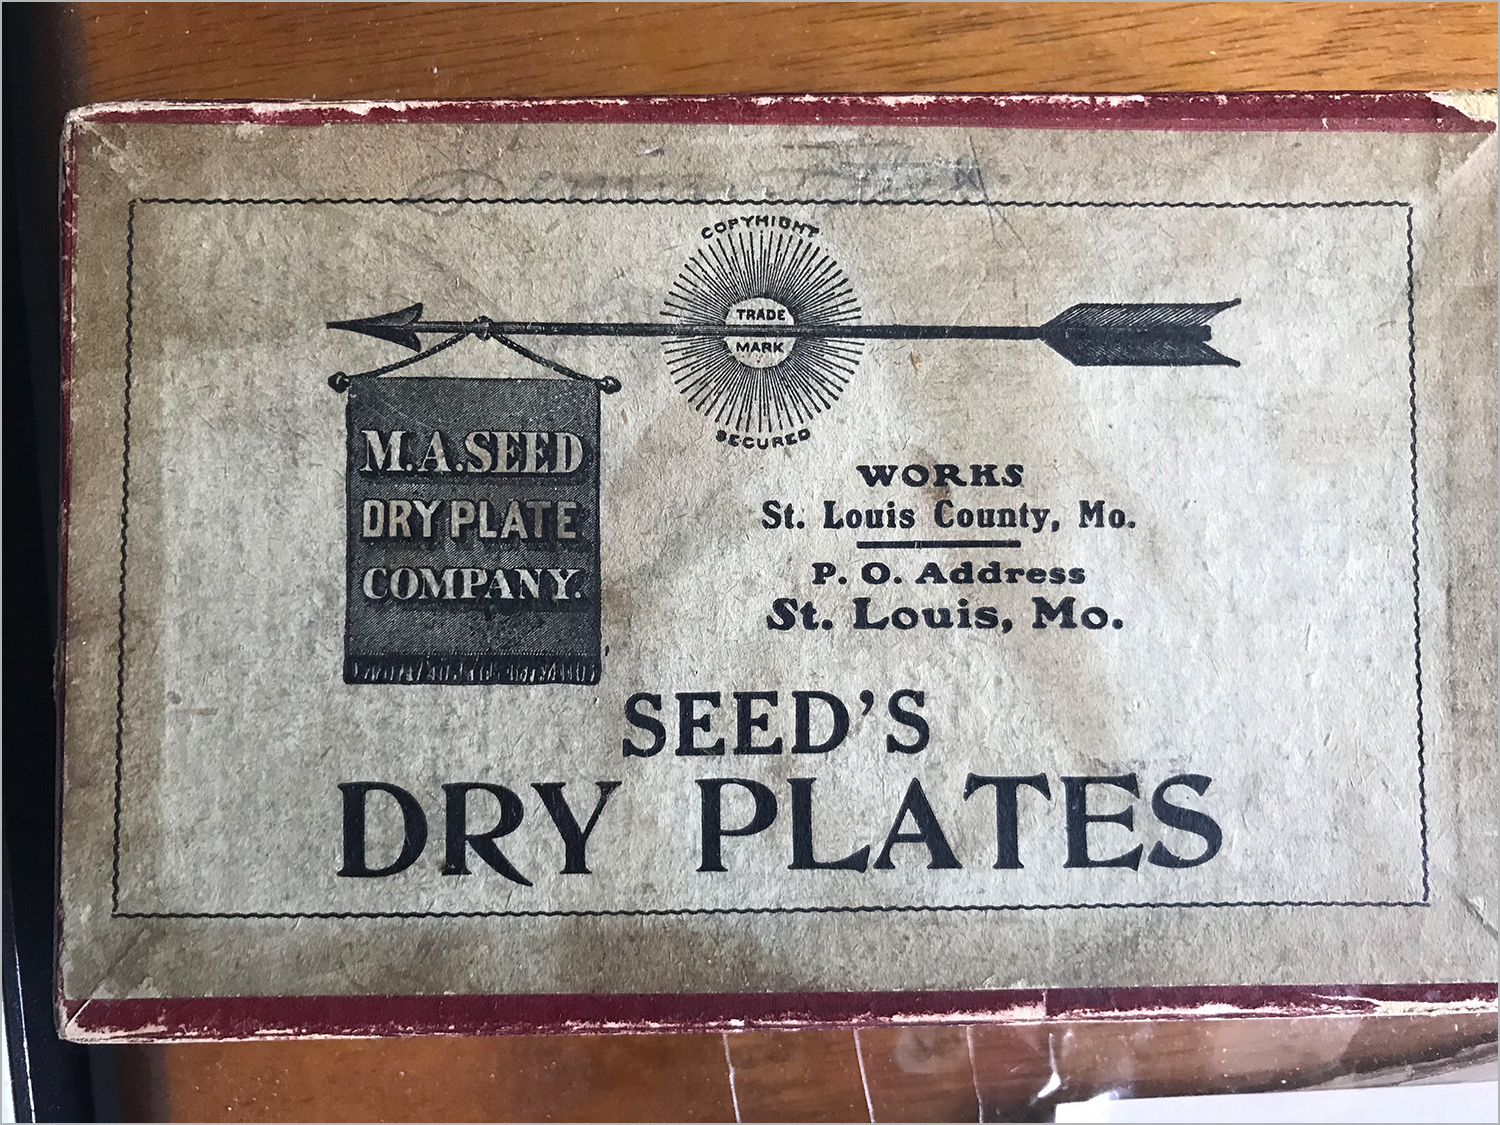 Seeds Dry Plates - The Company Was Founded In 1883